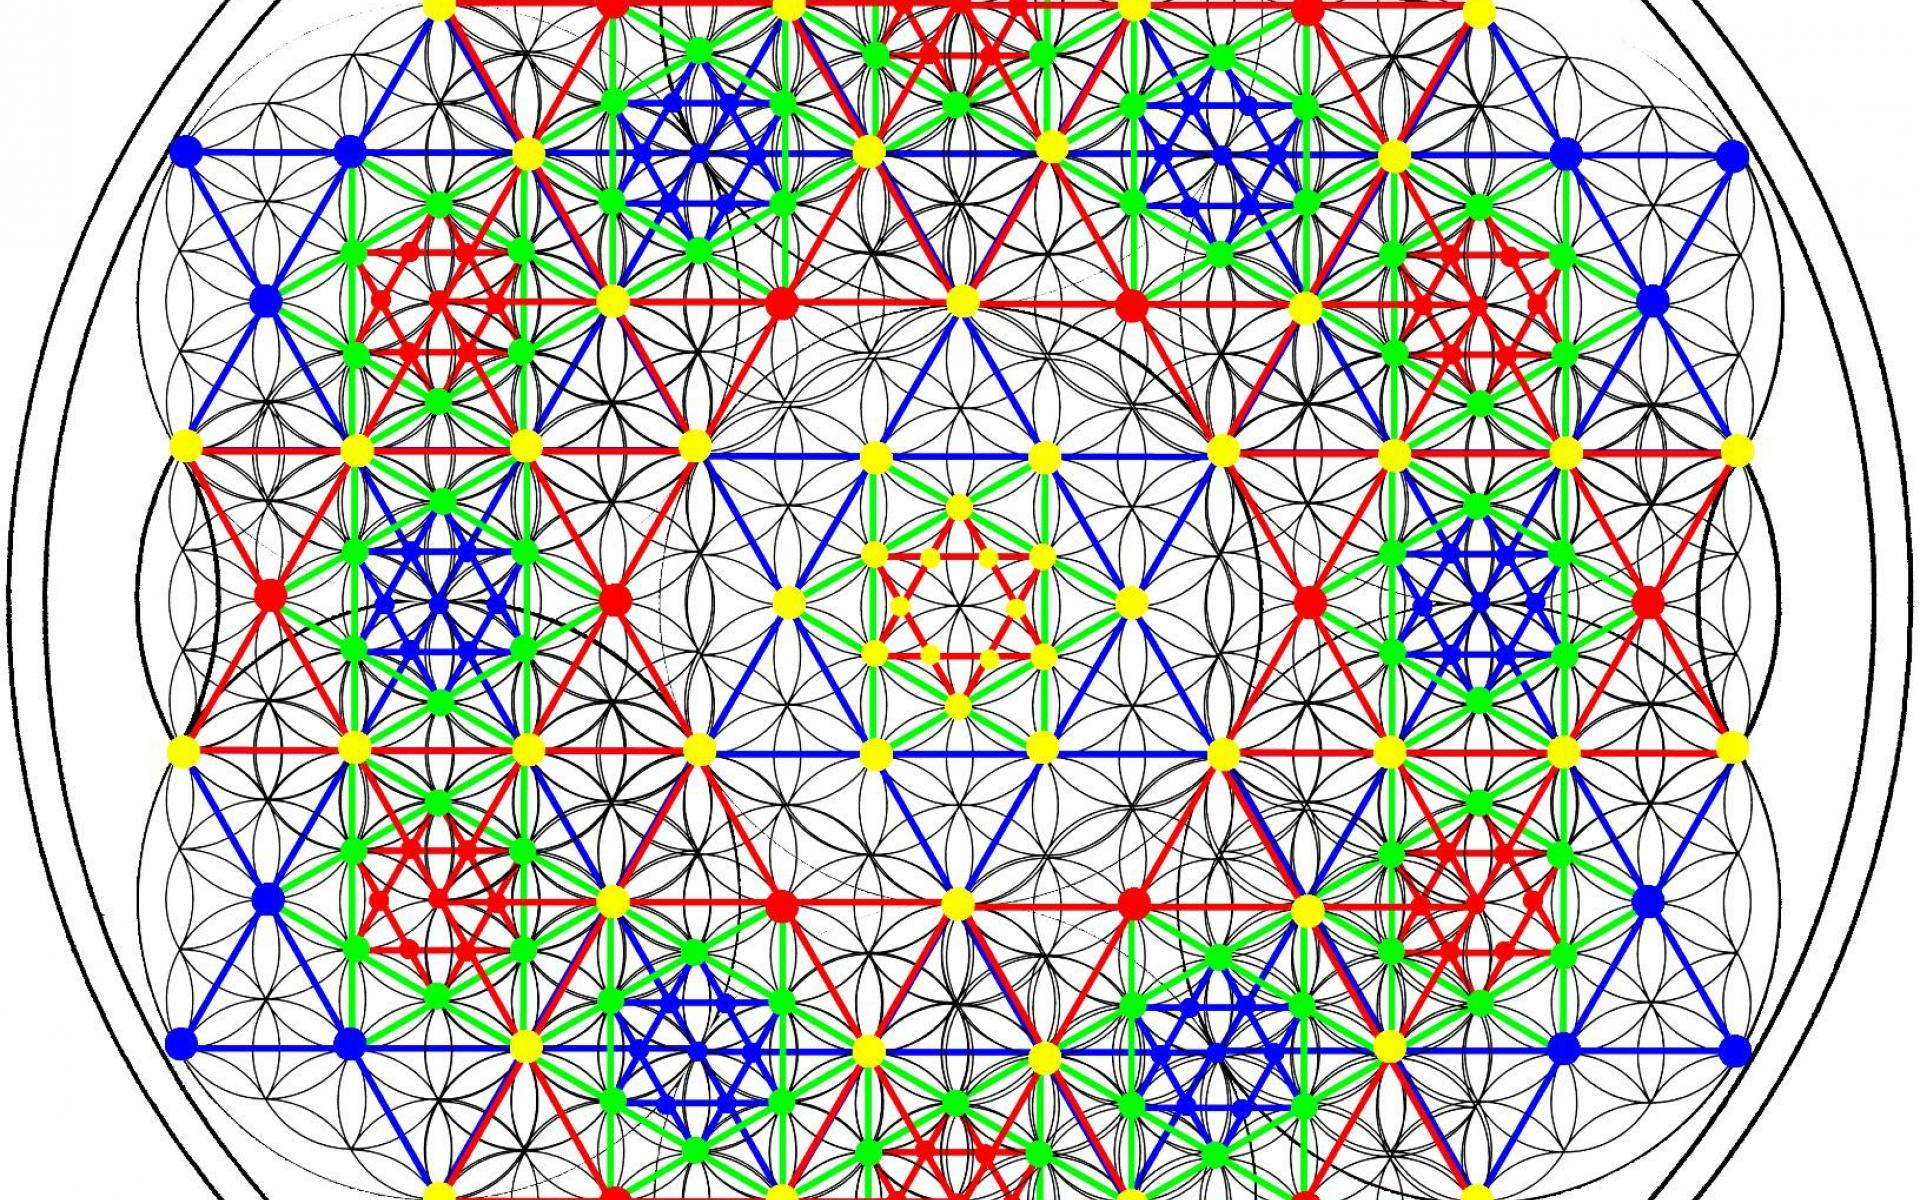 Sacred geometry   124055   High Quality and Resolution Wallpapers 1920x1200